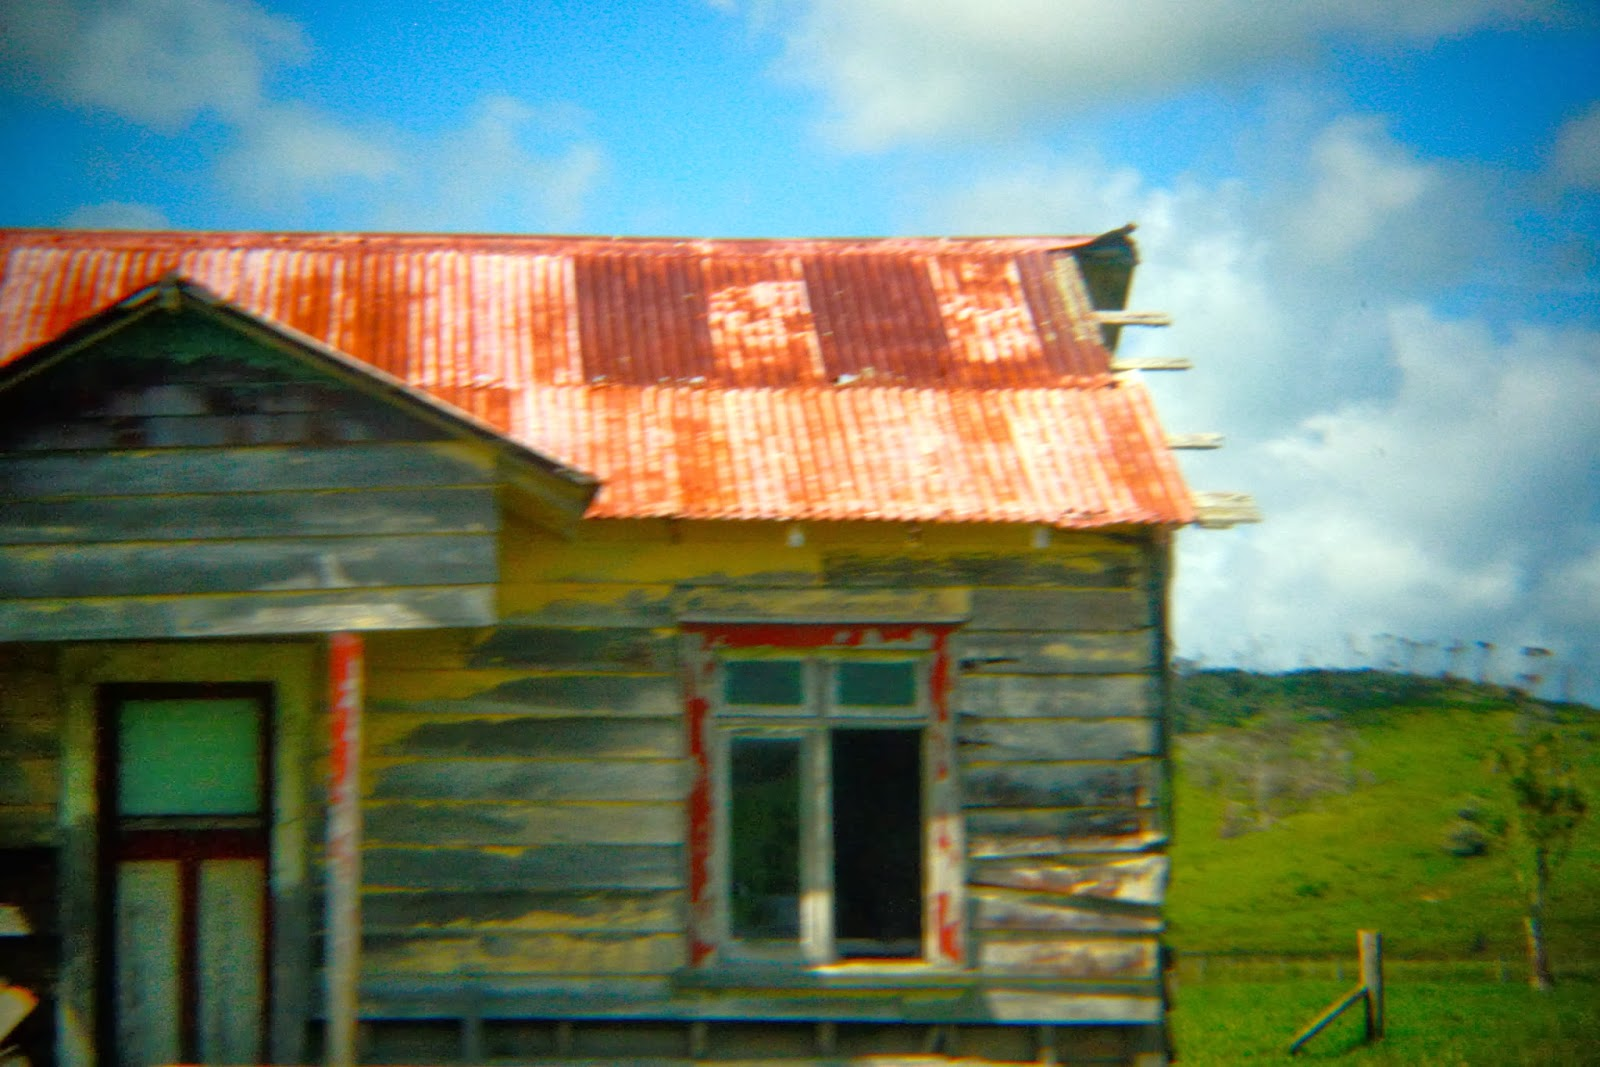 Another view of the same abandoned house in Northland, New Zealand. The roof is rusting off.